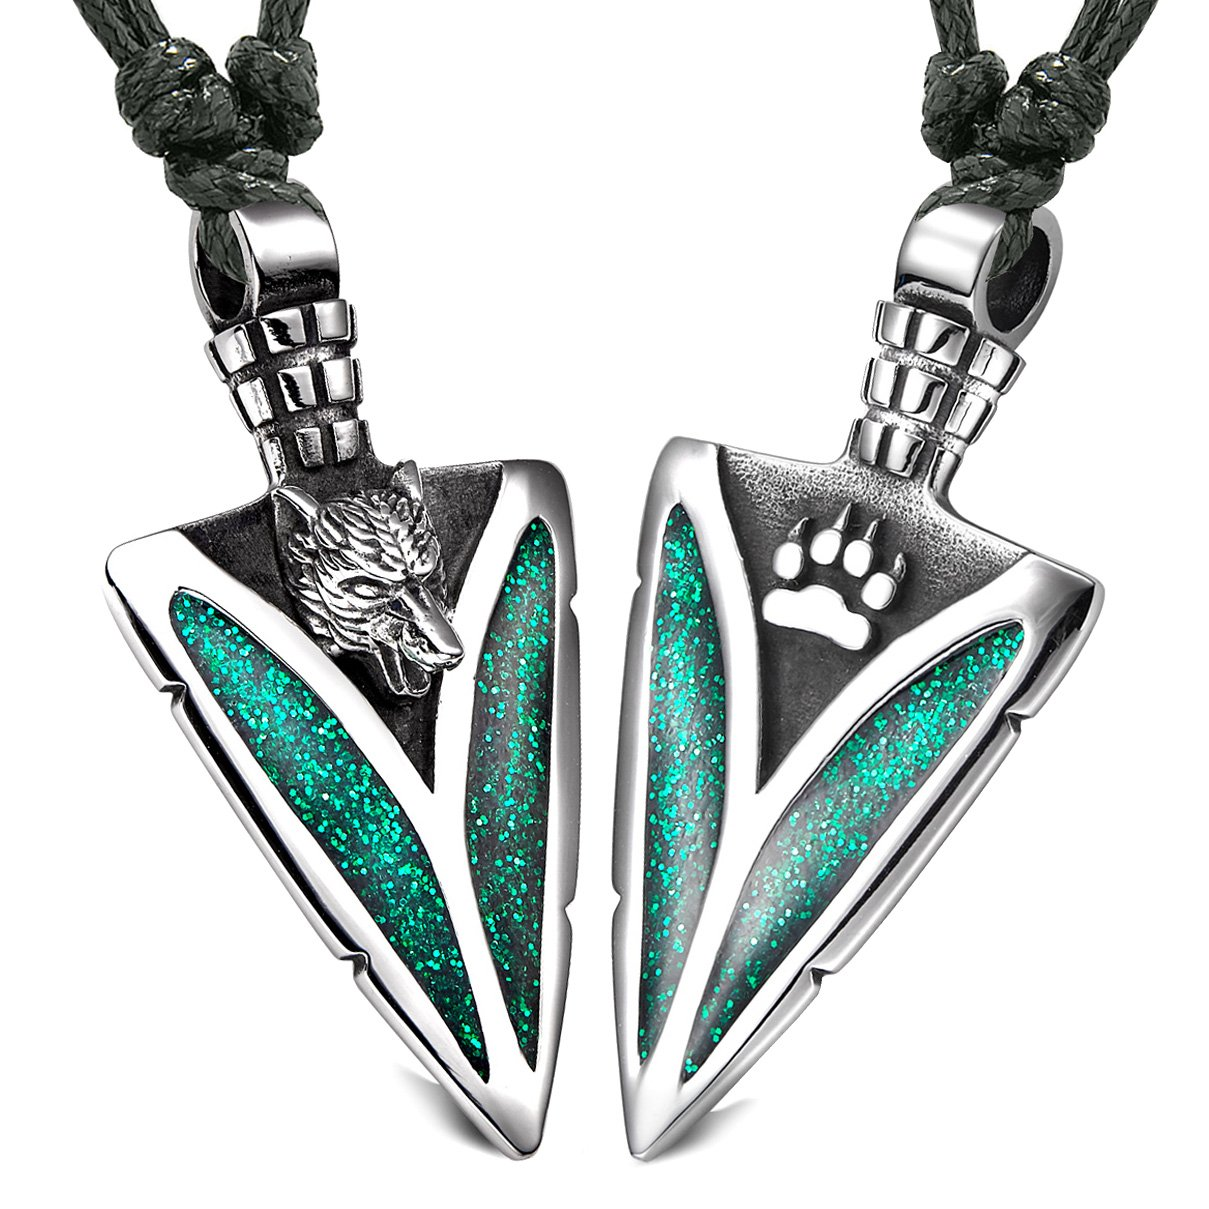 Arrowhead Howling Wolf and Paw Love Couples Best Friends Amulets Sparkling Royal Green Adjustable Necklaces